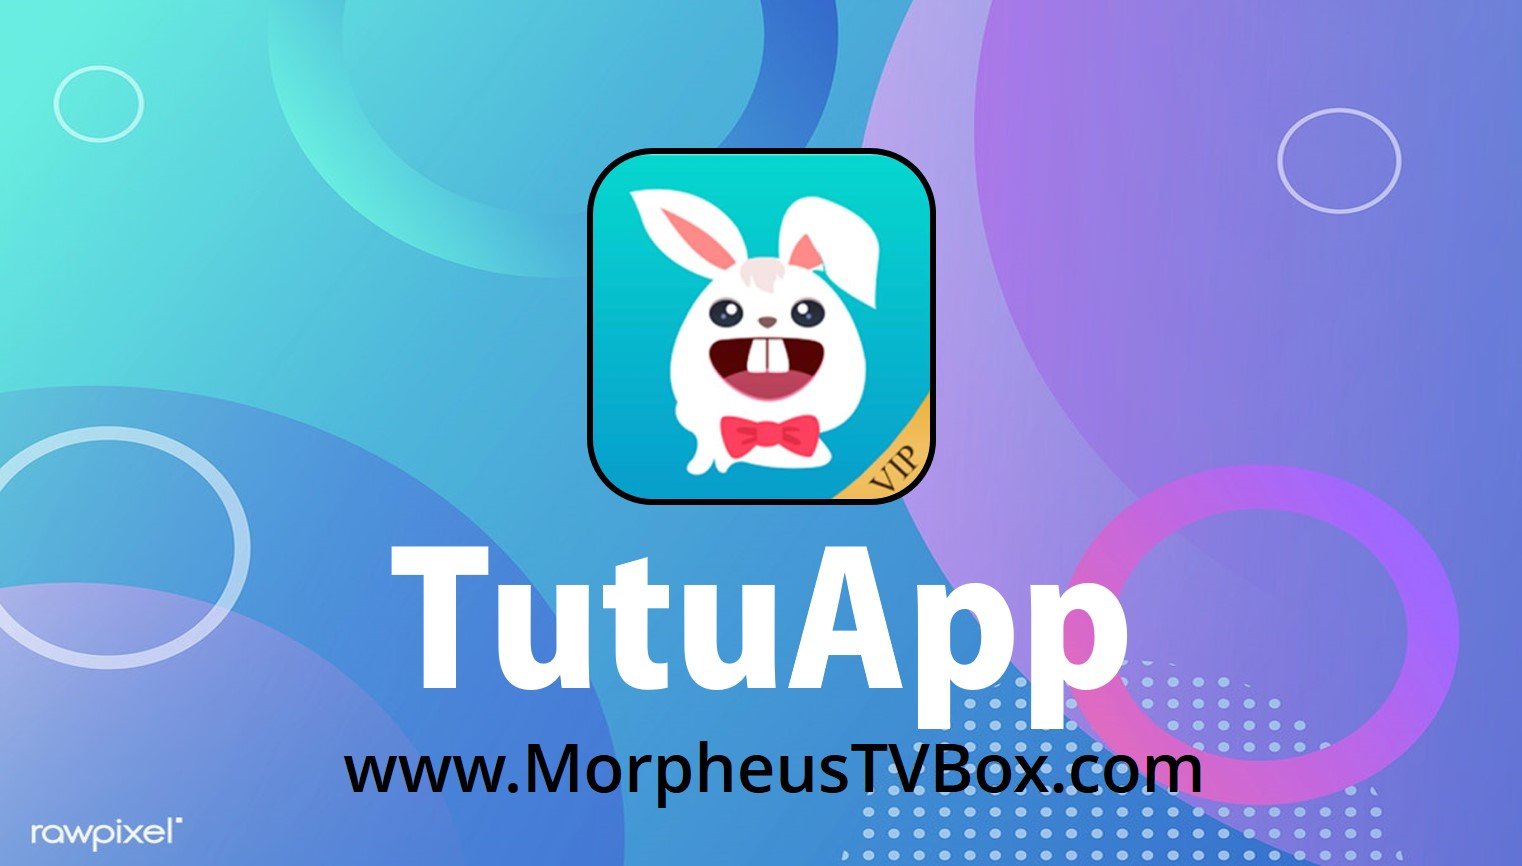 tutuapp apk download